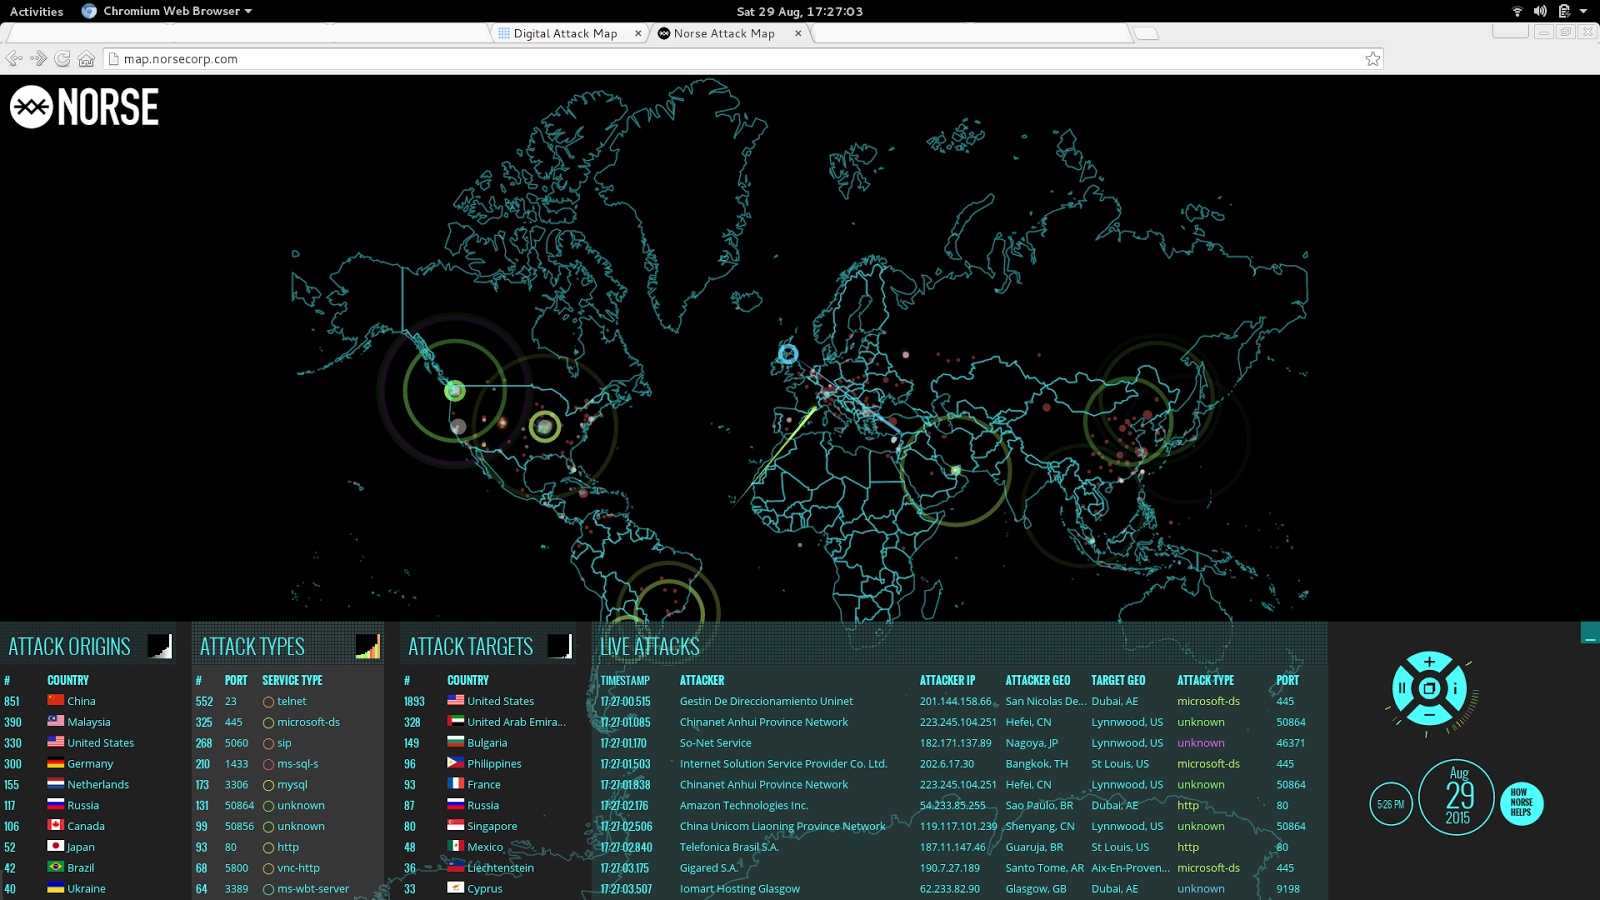 Information Technology Blogs  October 2015 From the norse map  as usual  ddos happen every time but nothing  particulary on the time declared by the anonymous toward malaysia IPs